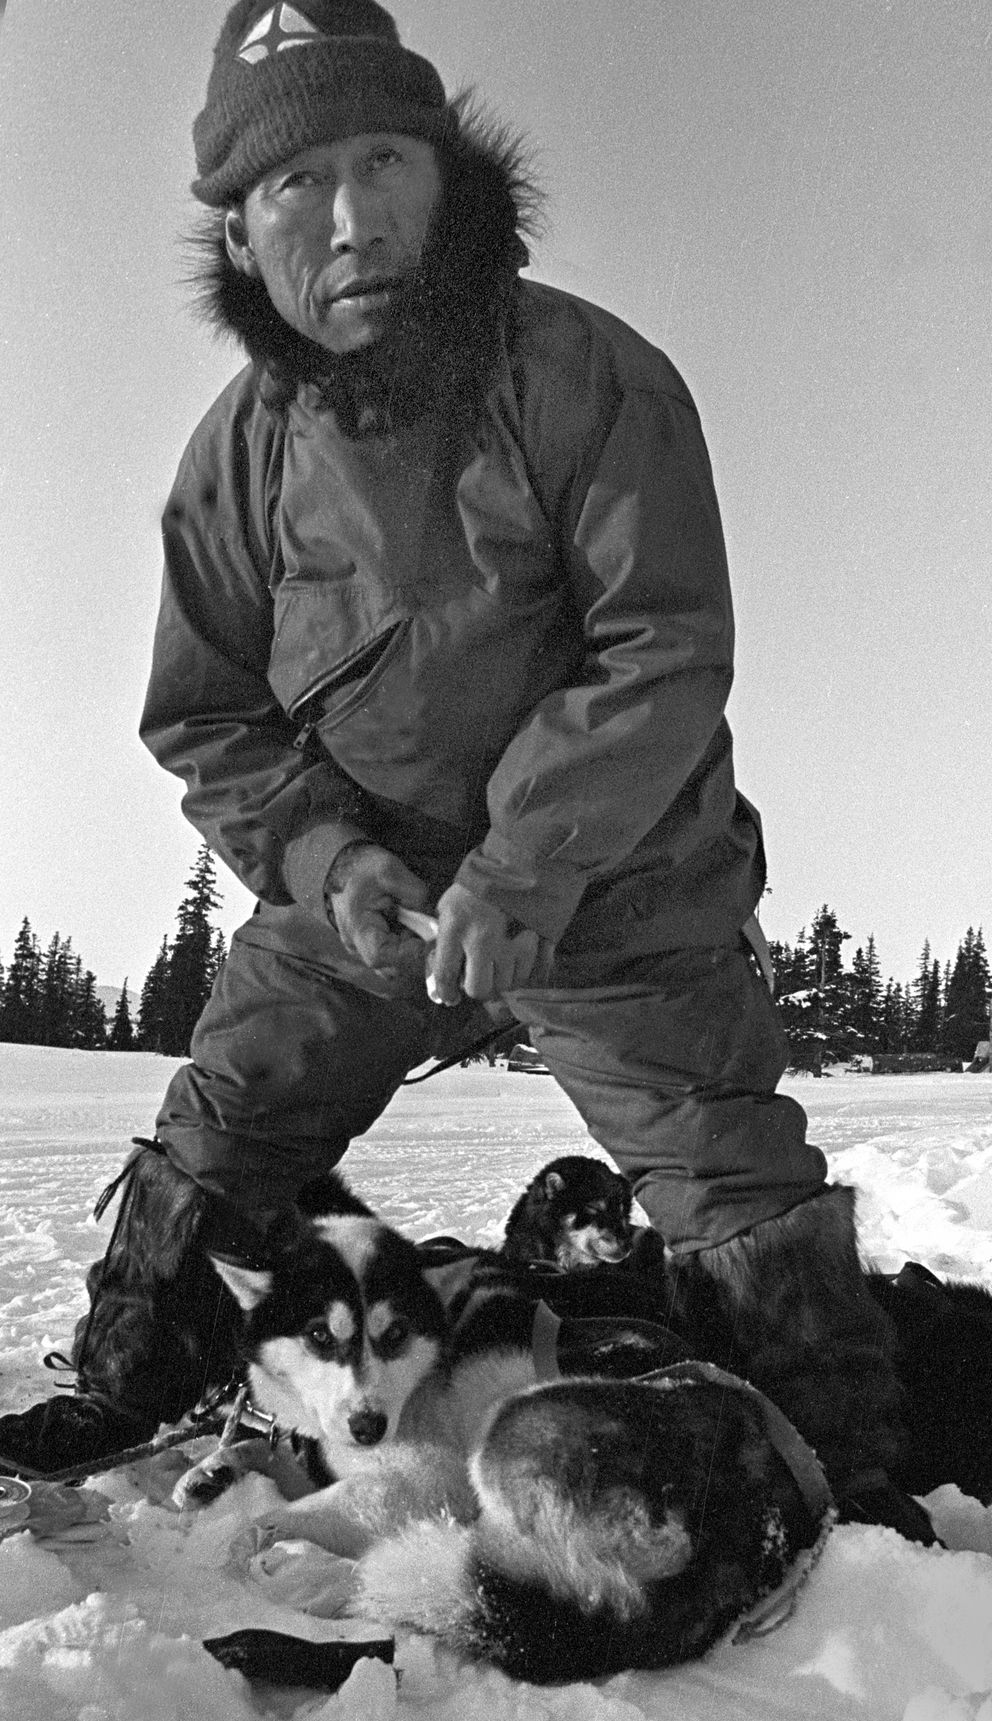 At the Elim checkpoint in the 1980 Iditarod Sled Dog Race, Herbie Nayokpuk tended to his dogs. Herbie went on to finish second in that year's race. (Fran Durner / ADN archive 1980)